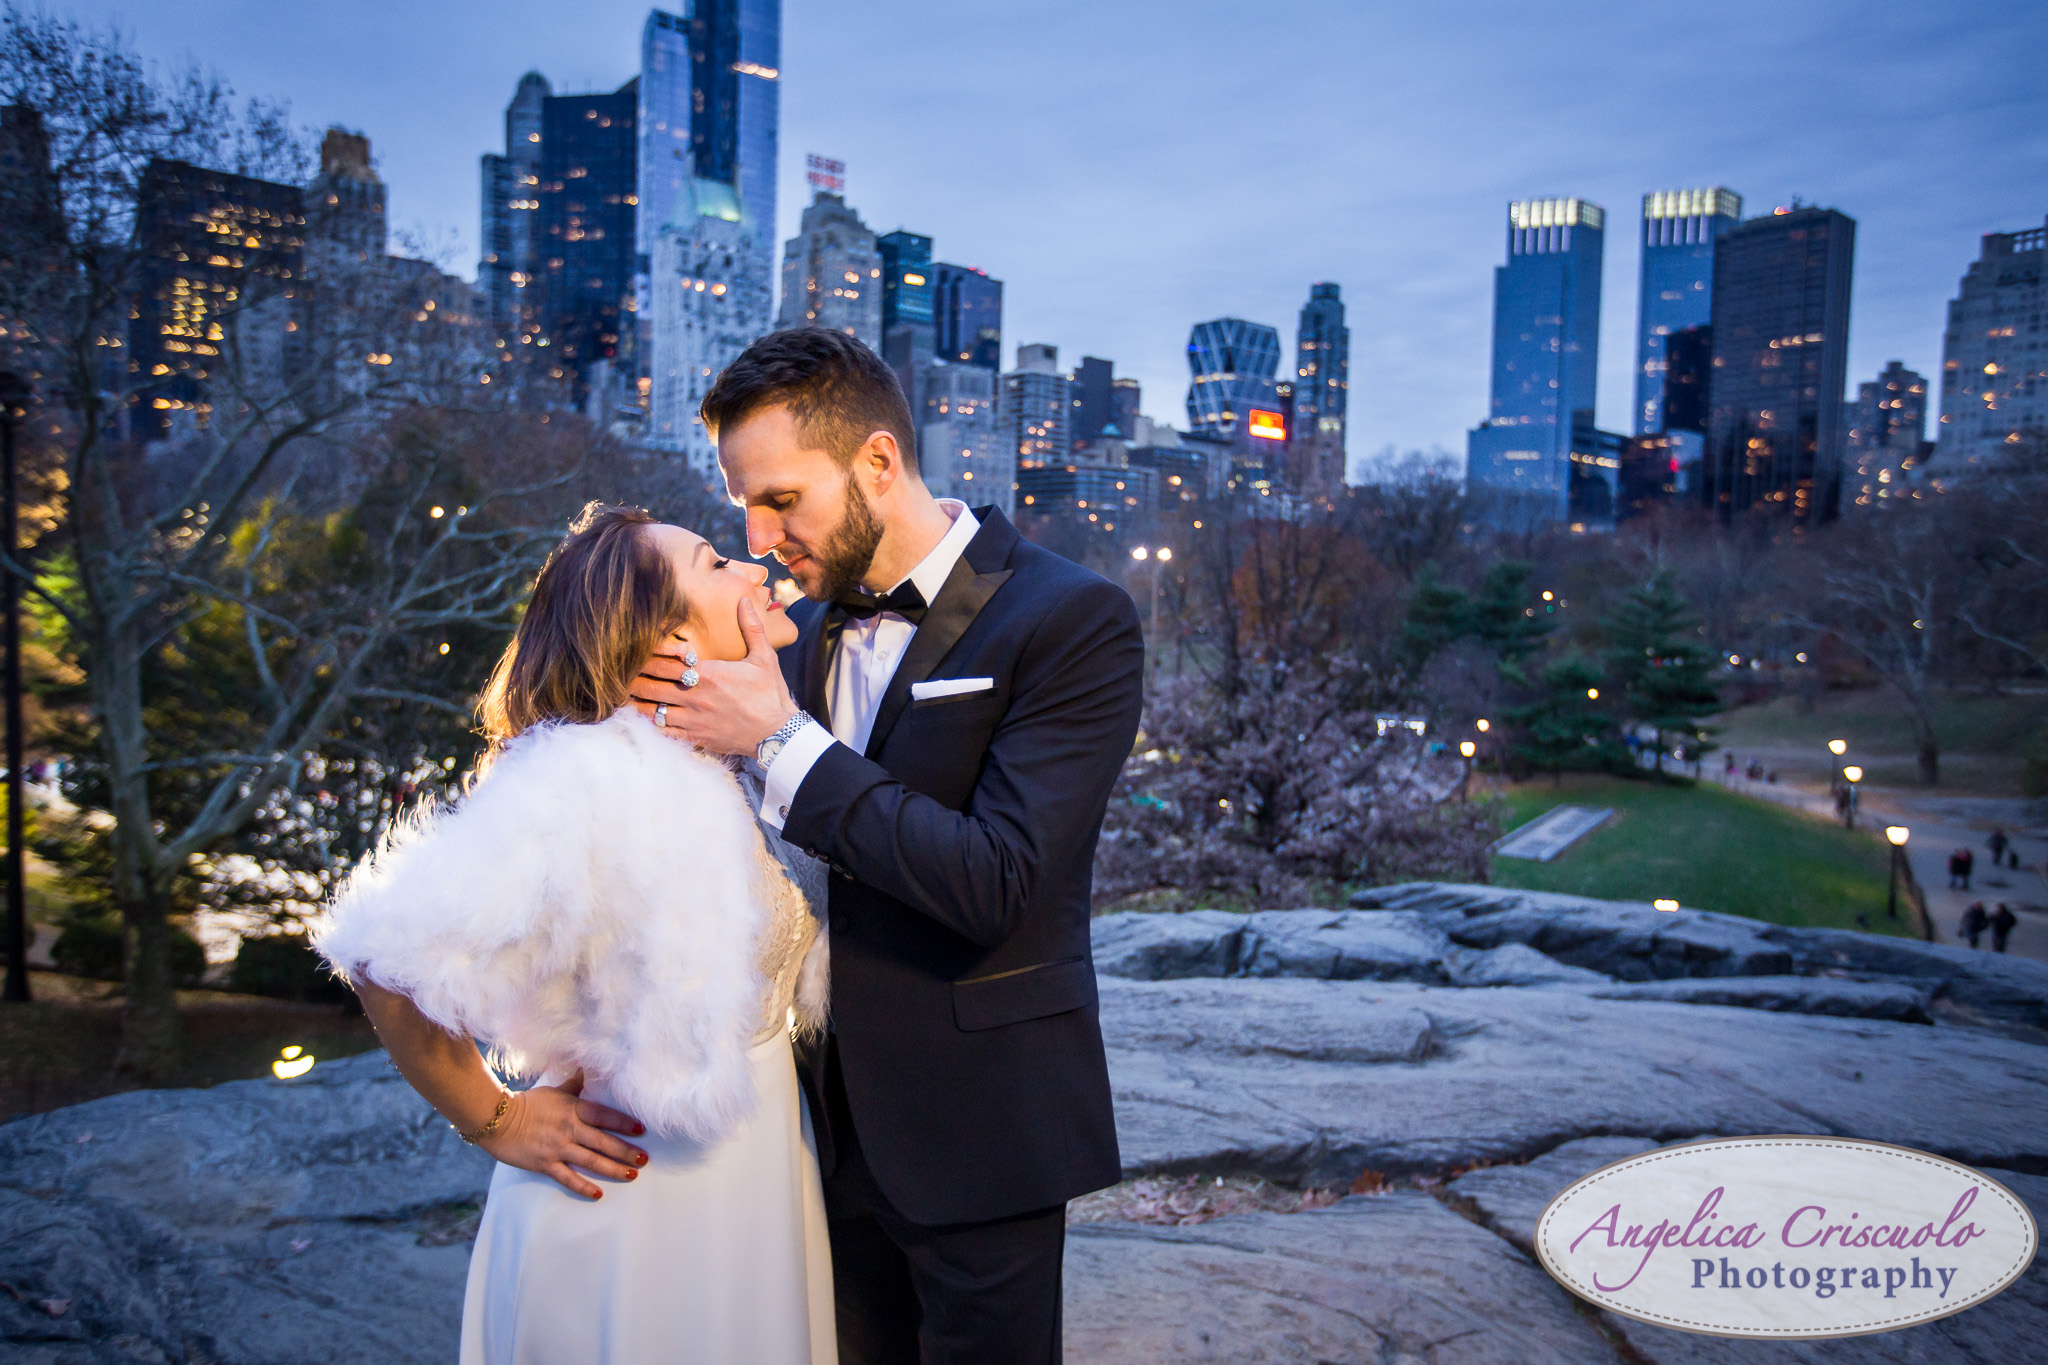 Central Park New York engagement couple wedding photos formal romantic skyline